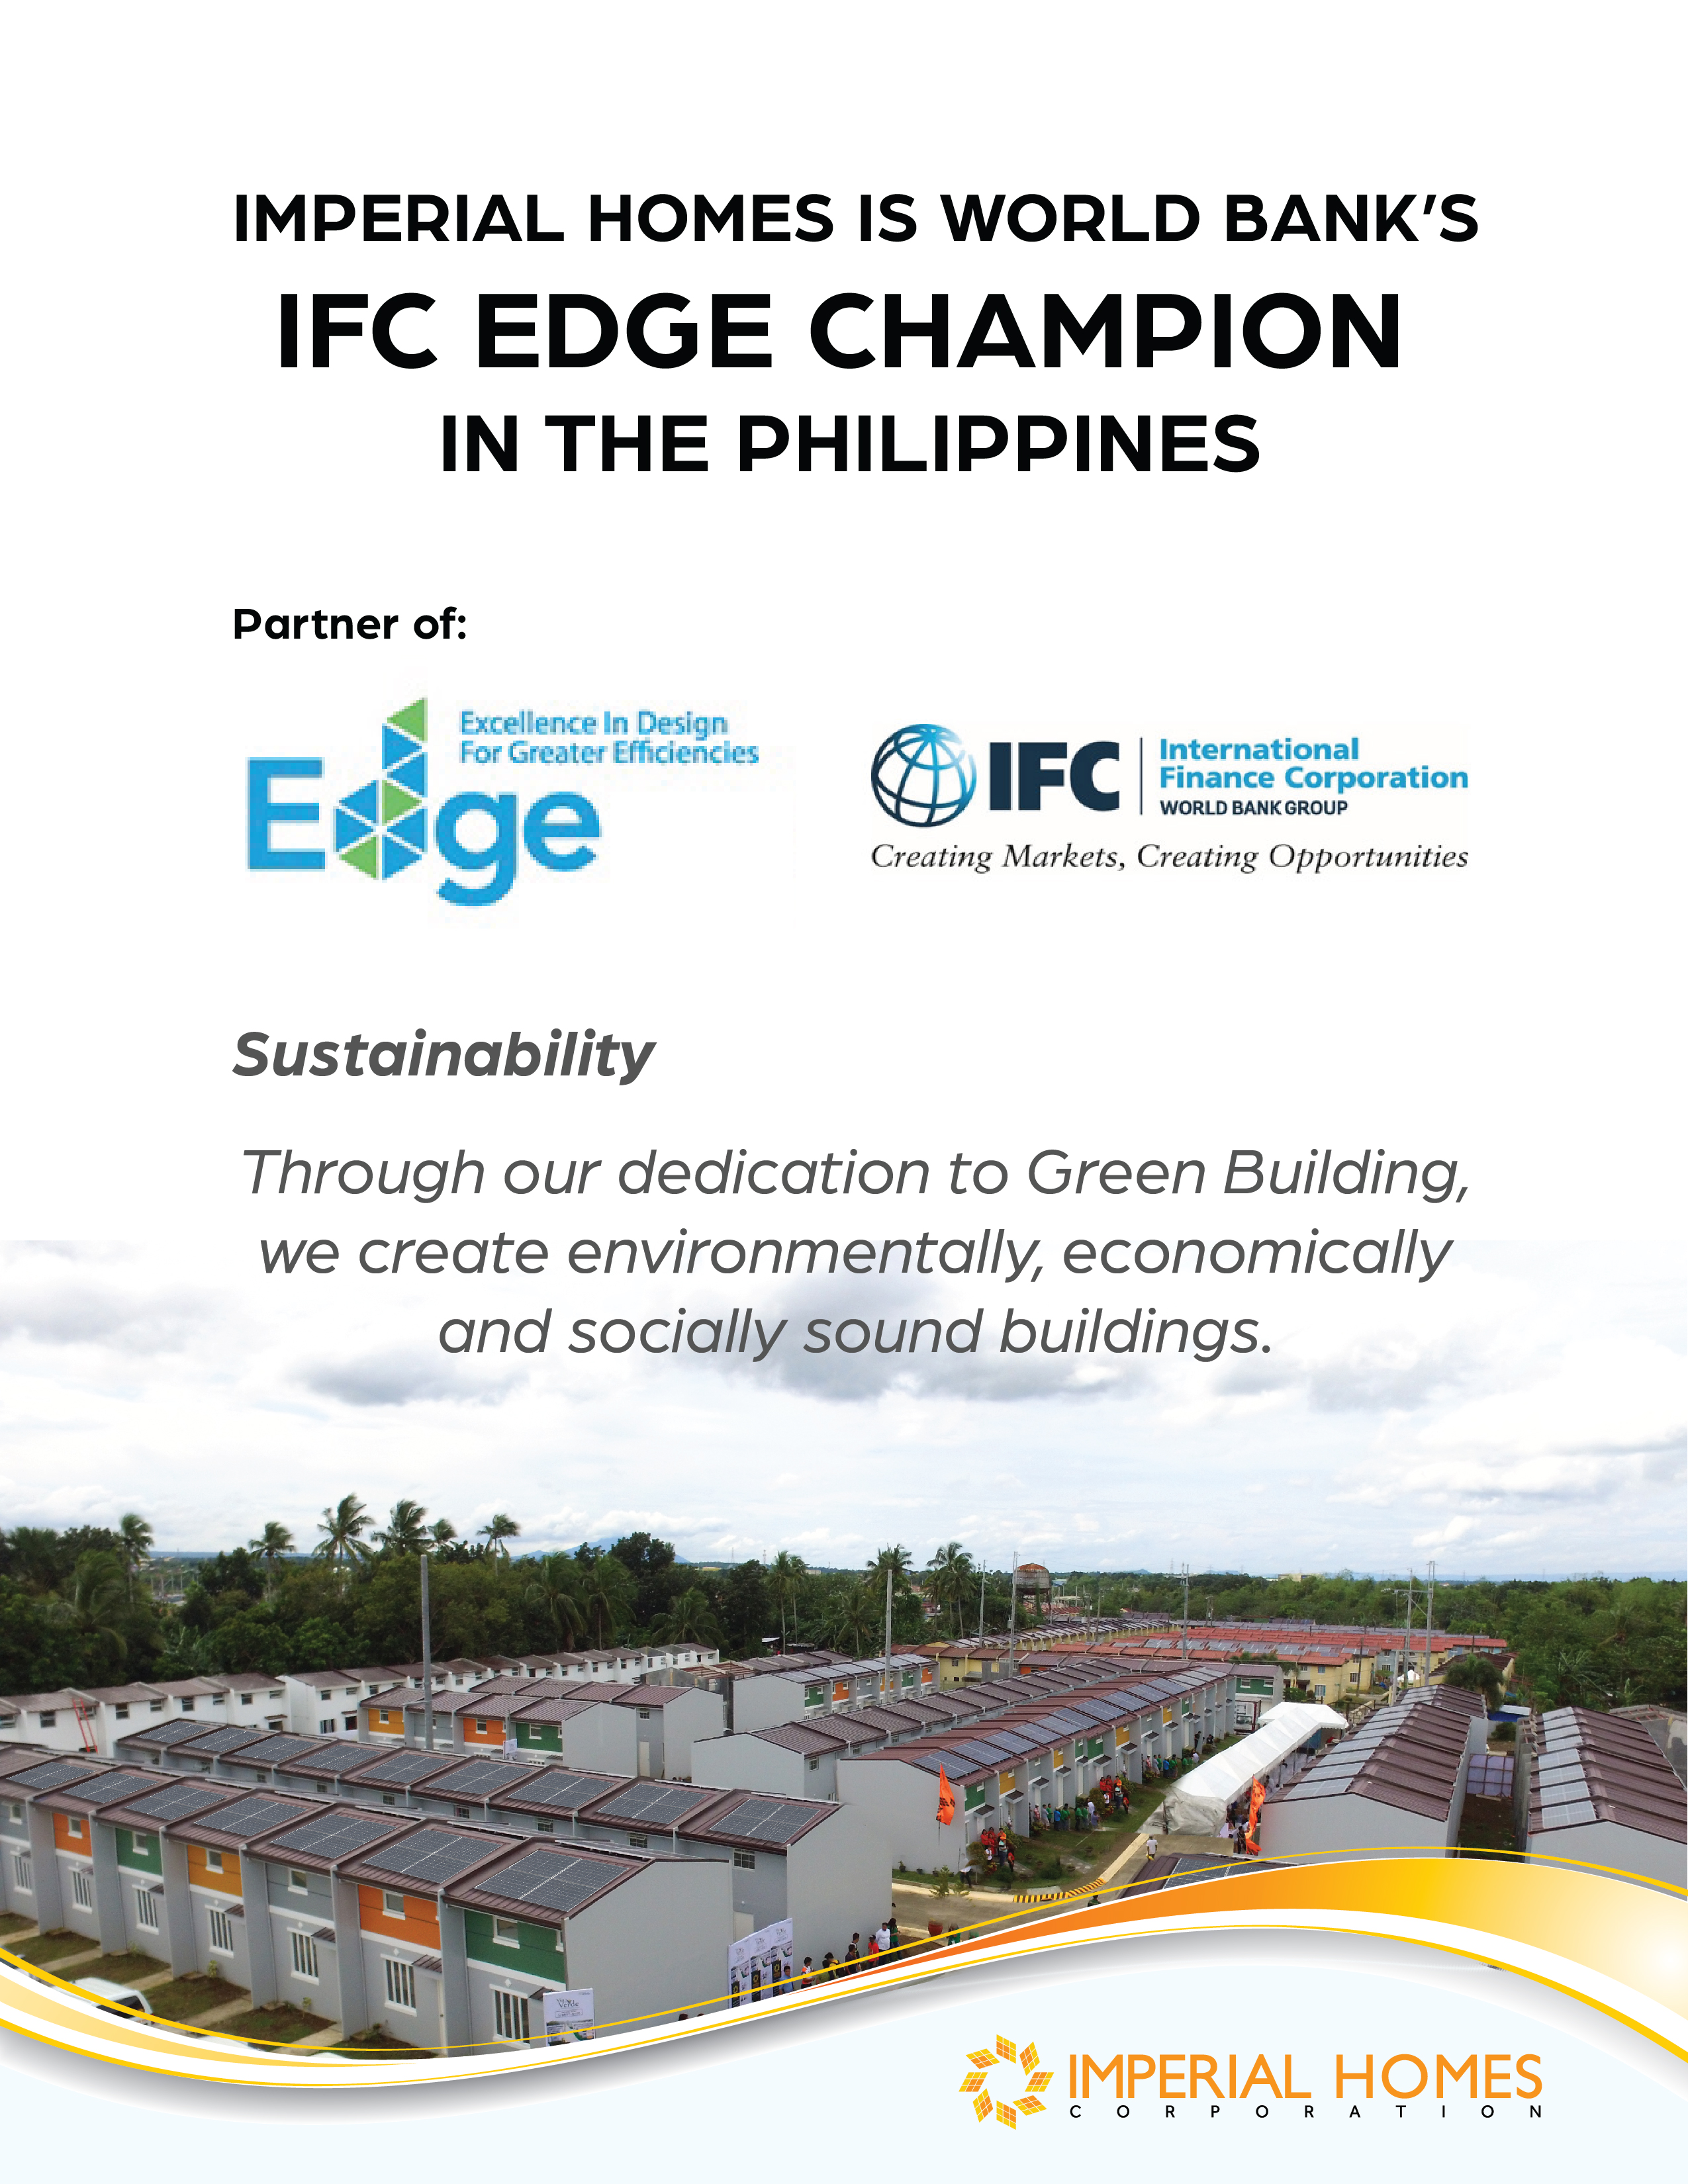 Imperial Homes is World Bank's IFC EDGE CHAMPION in the Philippines